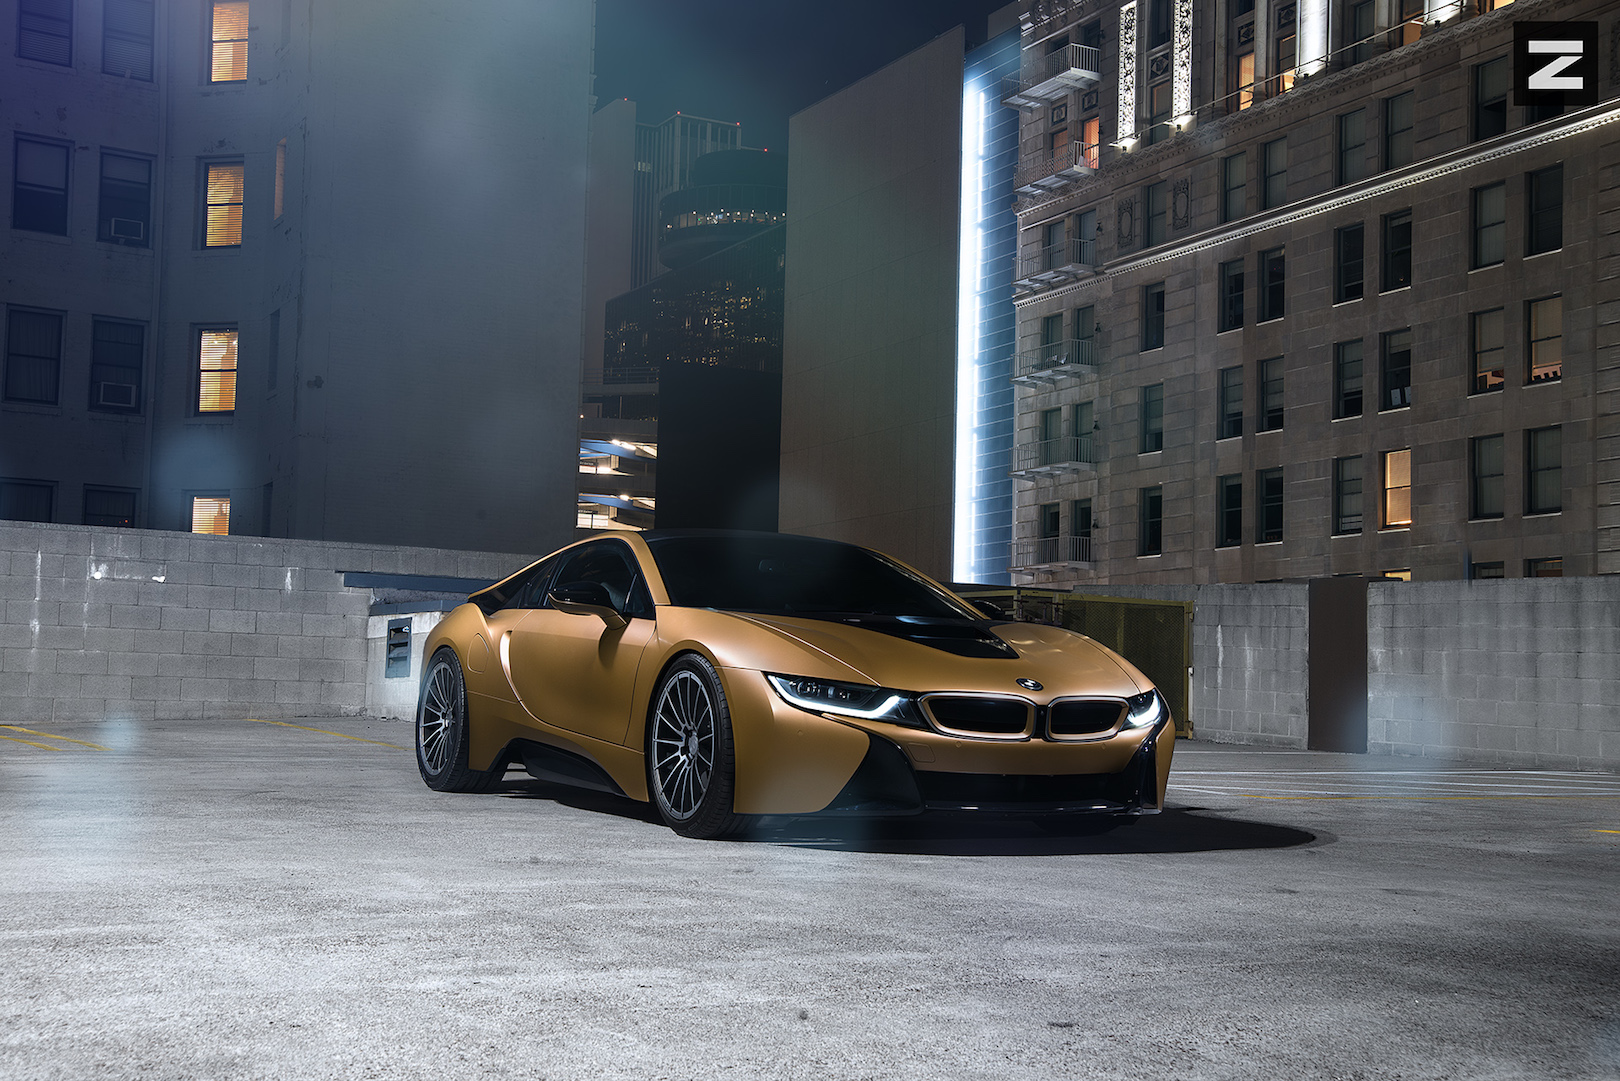 BMW i8 Gold Gunmetal ZS15